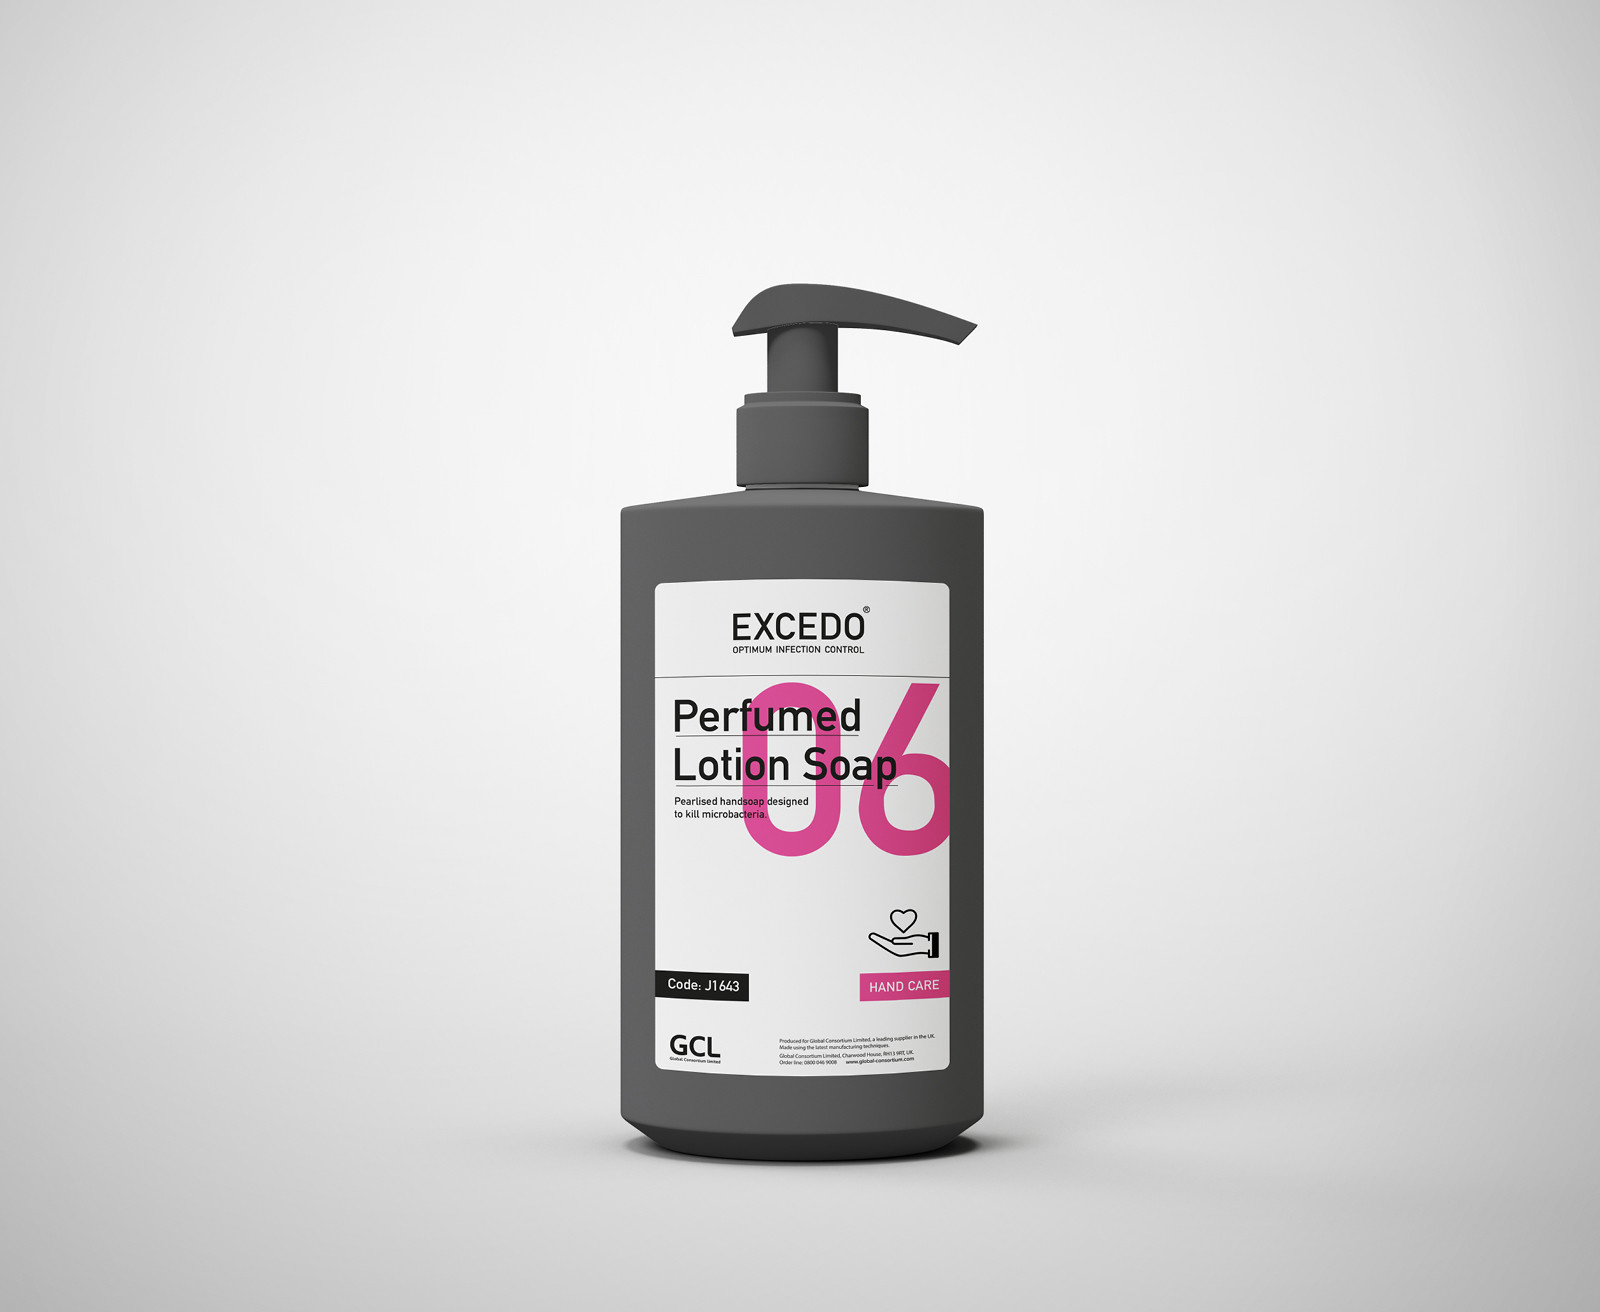 Personal care consumable packaging, branding and design